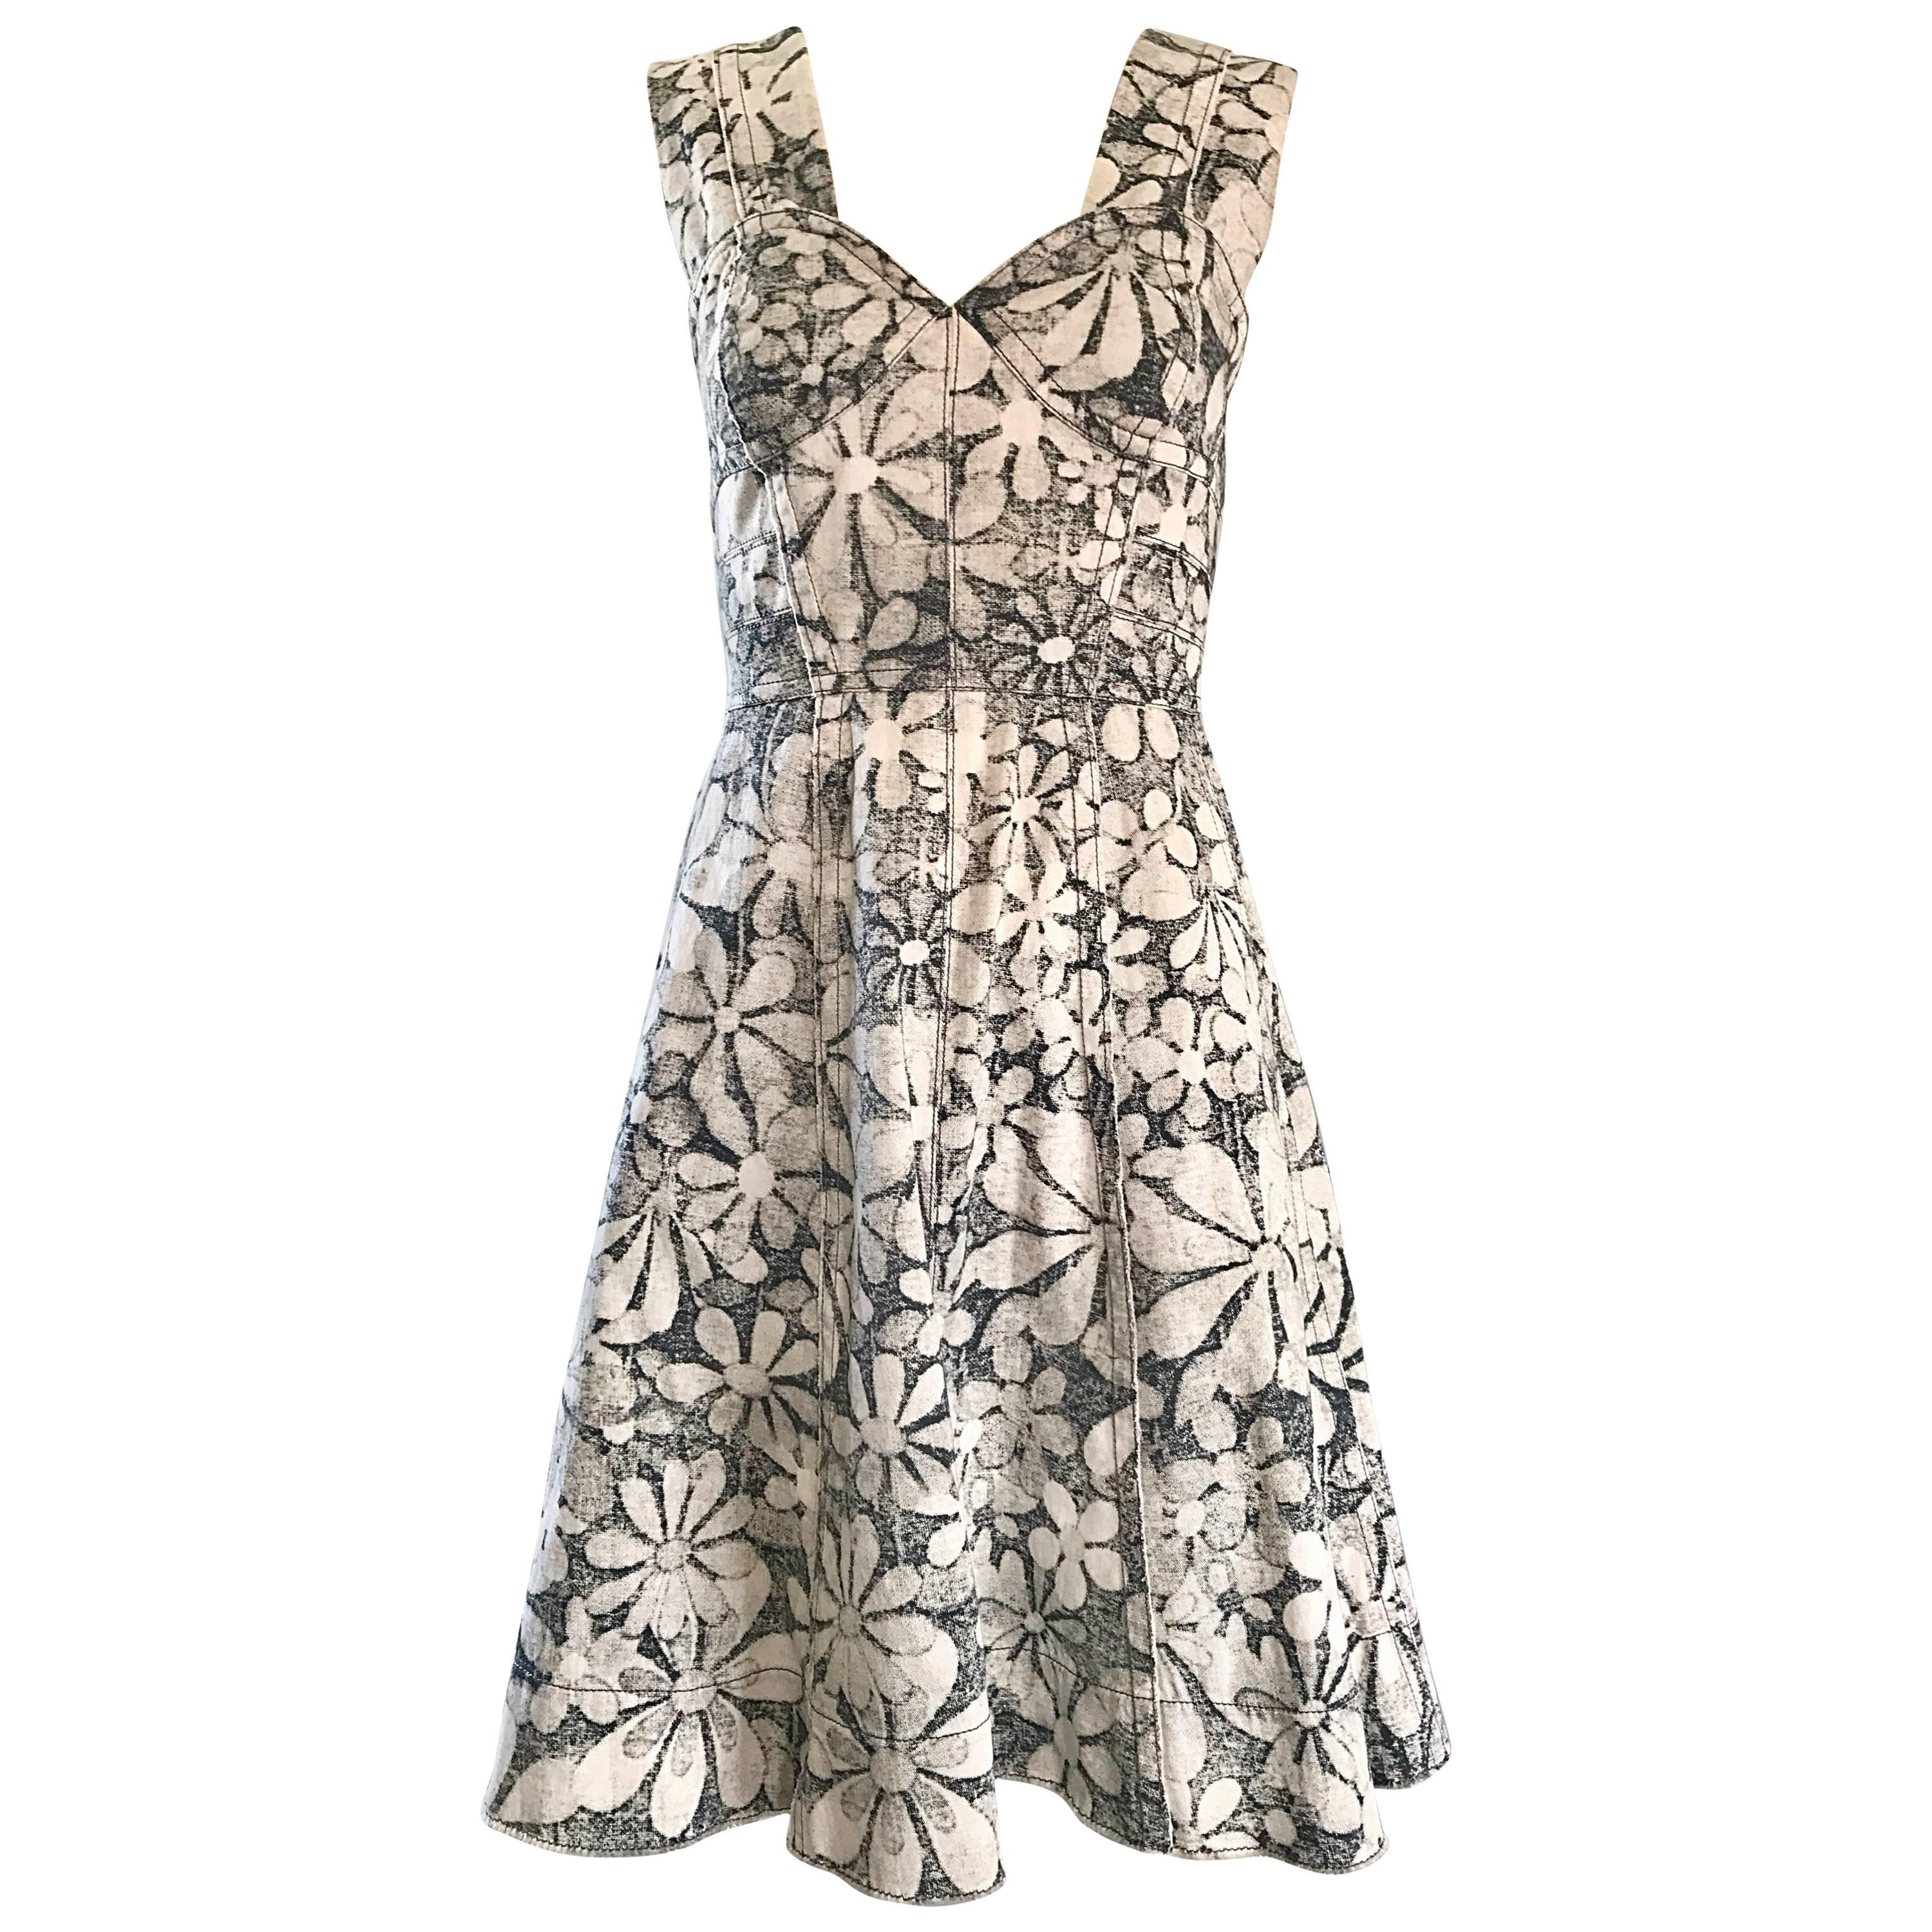 Marc Jacobs New Gray and White Denim Flower Size 0 / 2 Fit n' Flare Corset Dress